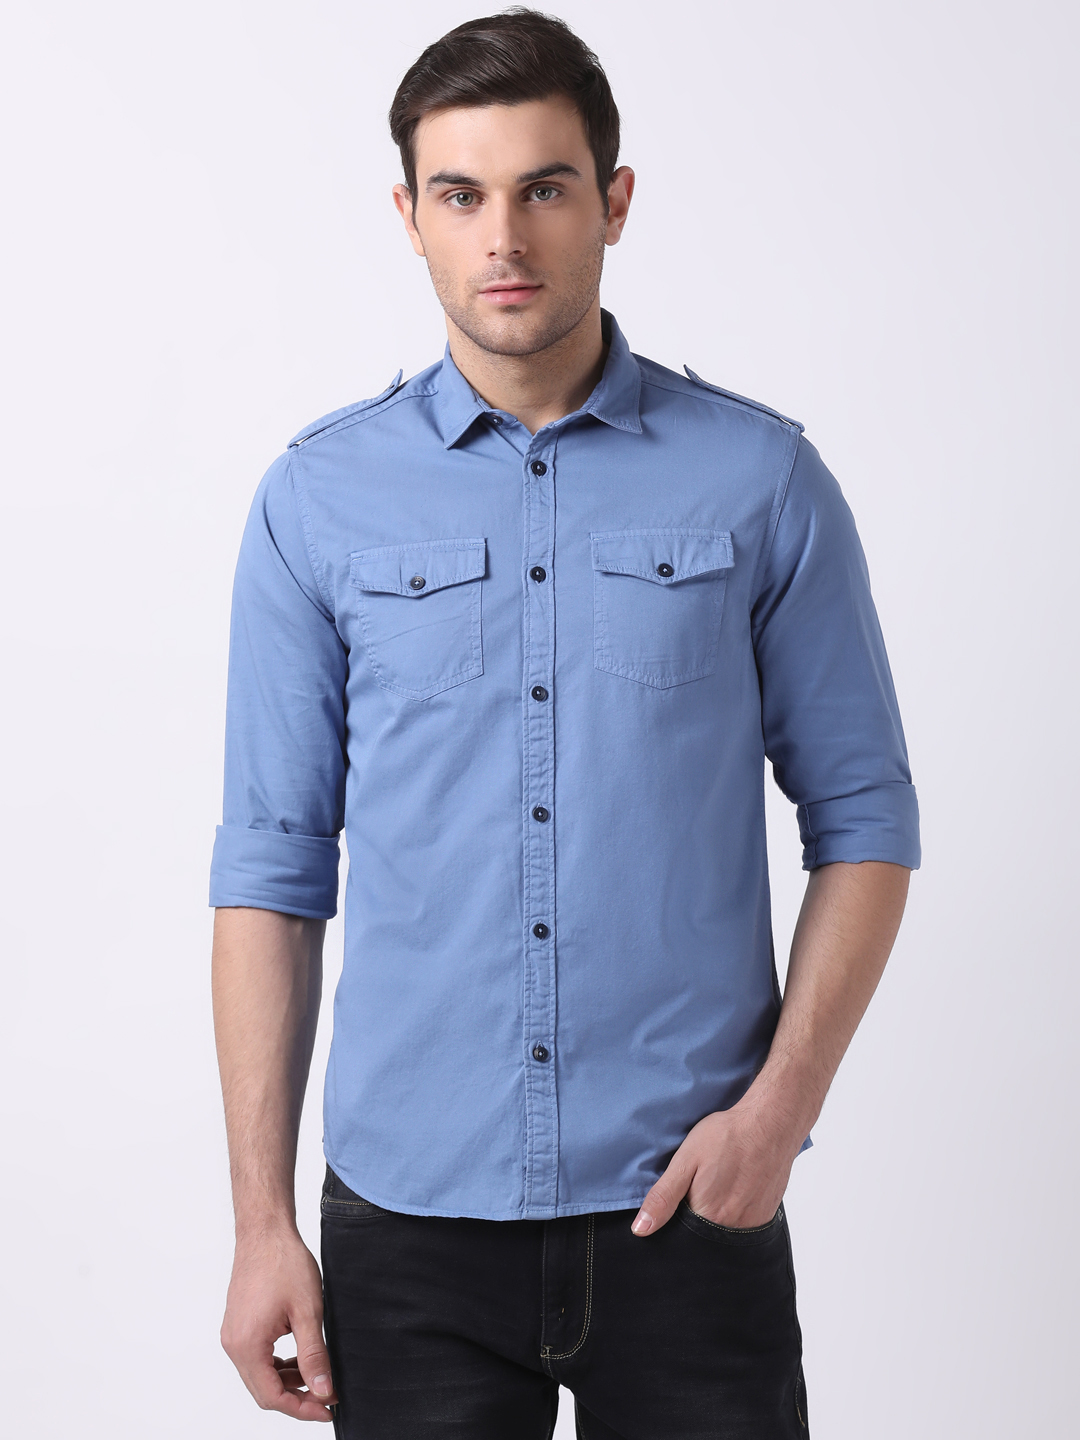 The Bear House | TBH Over-Dyed 2-Pocket Shirt